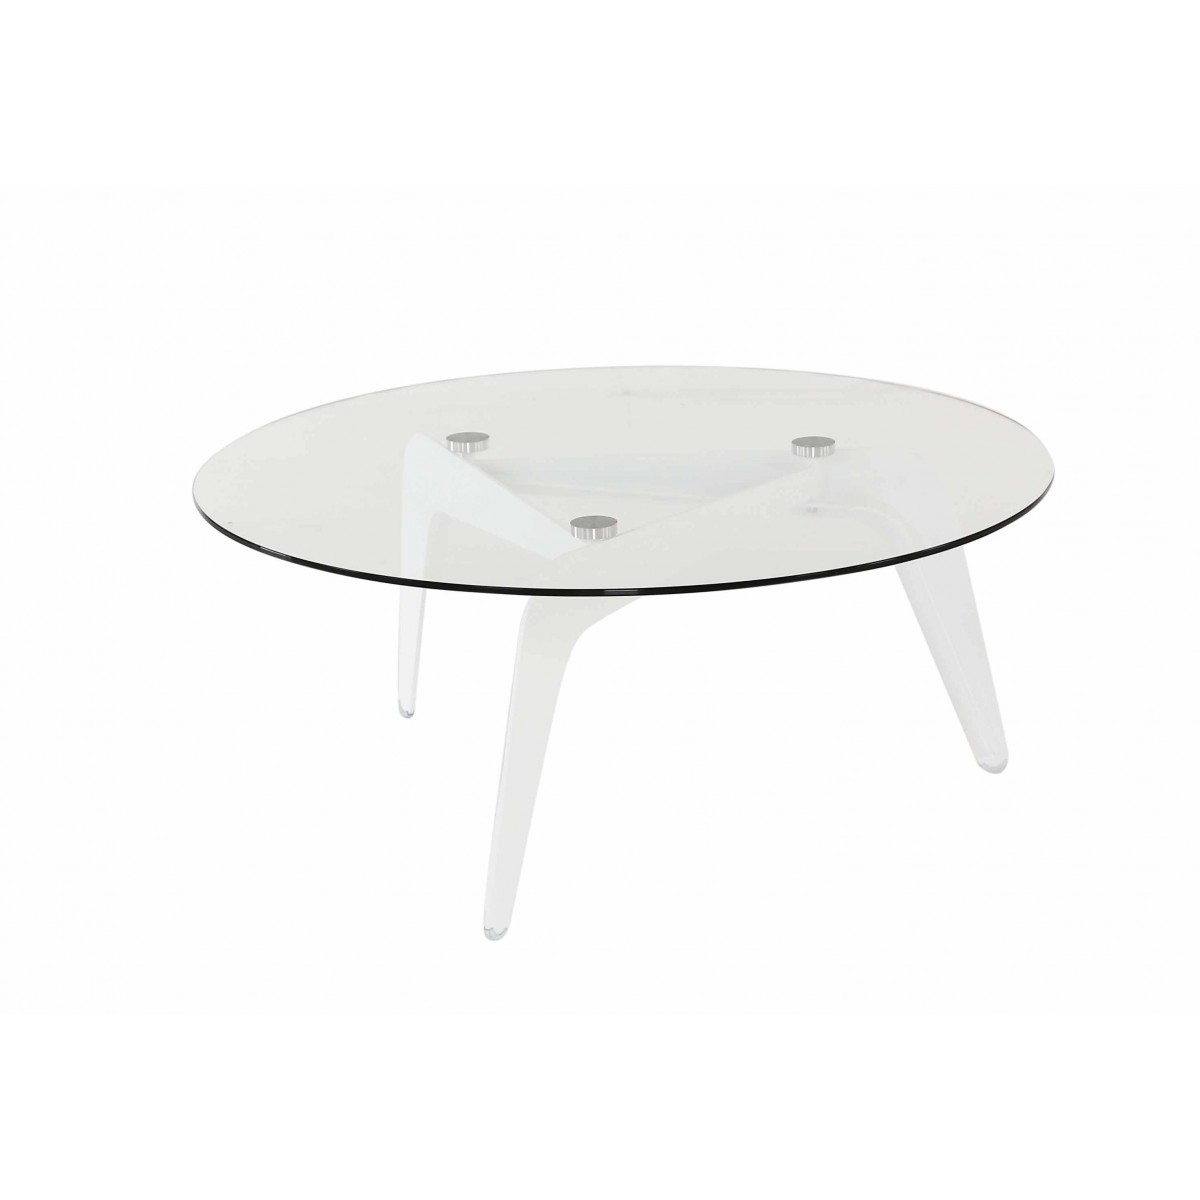 Table basse ronde en verre design mooviin Salon de jardin table ronde verre